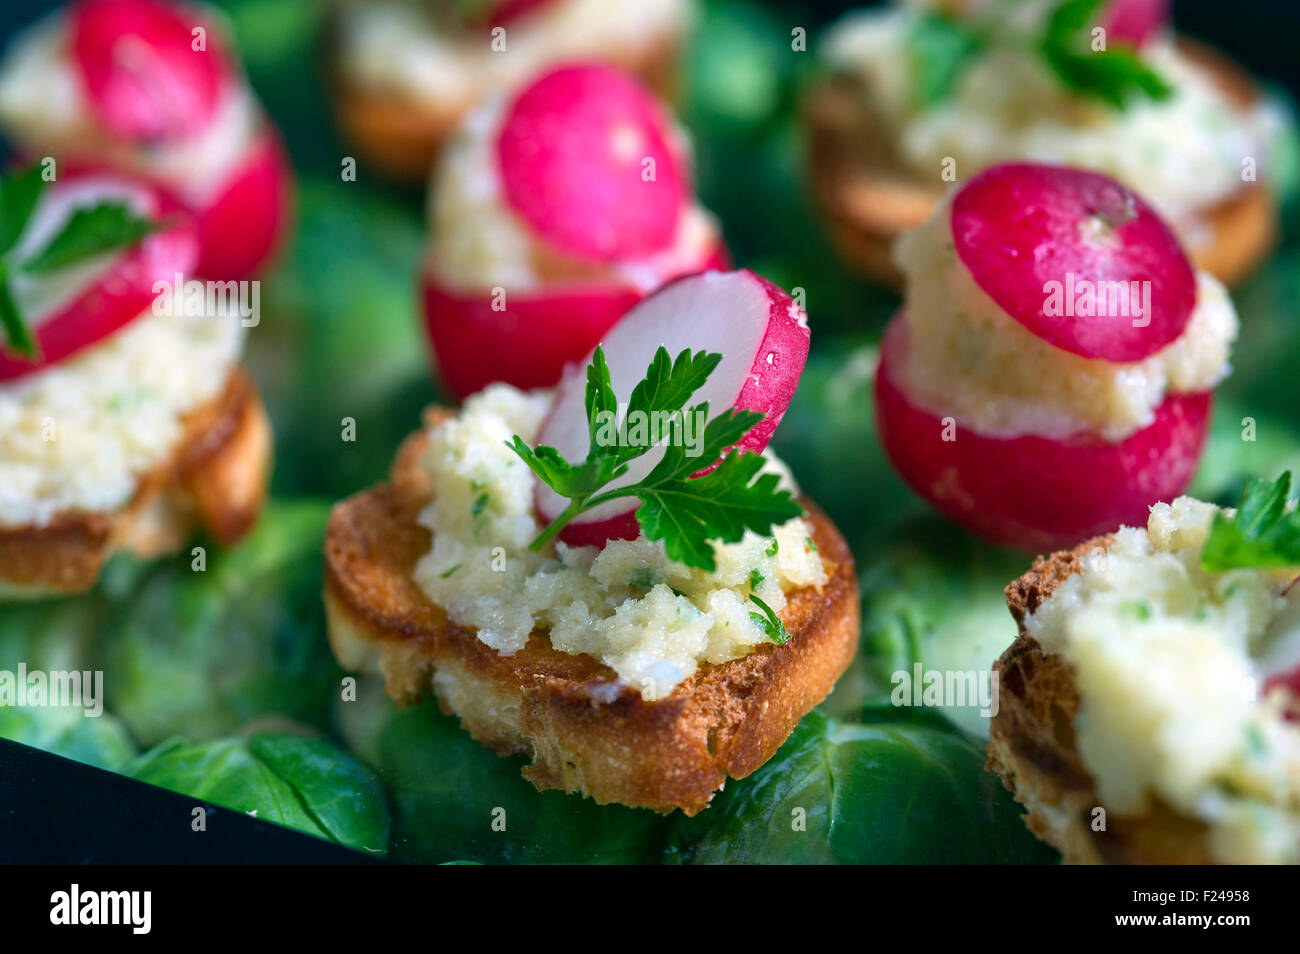 Canapes, small finger food suitable for parties. - Stock Image